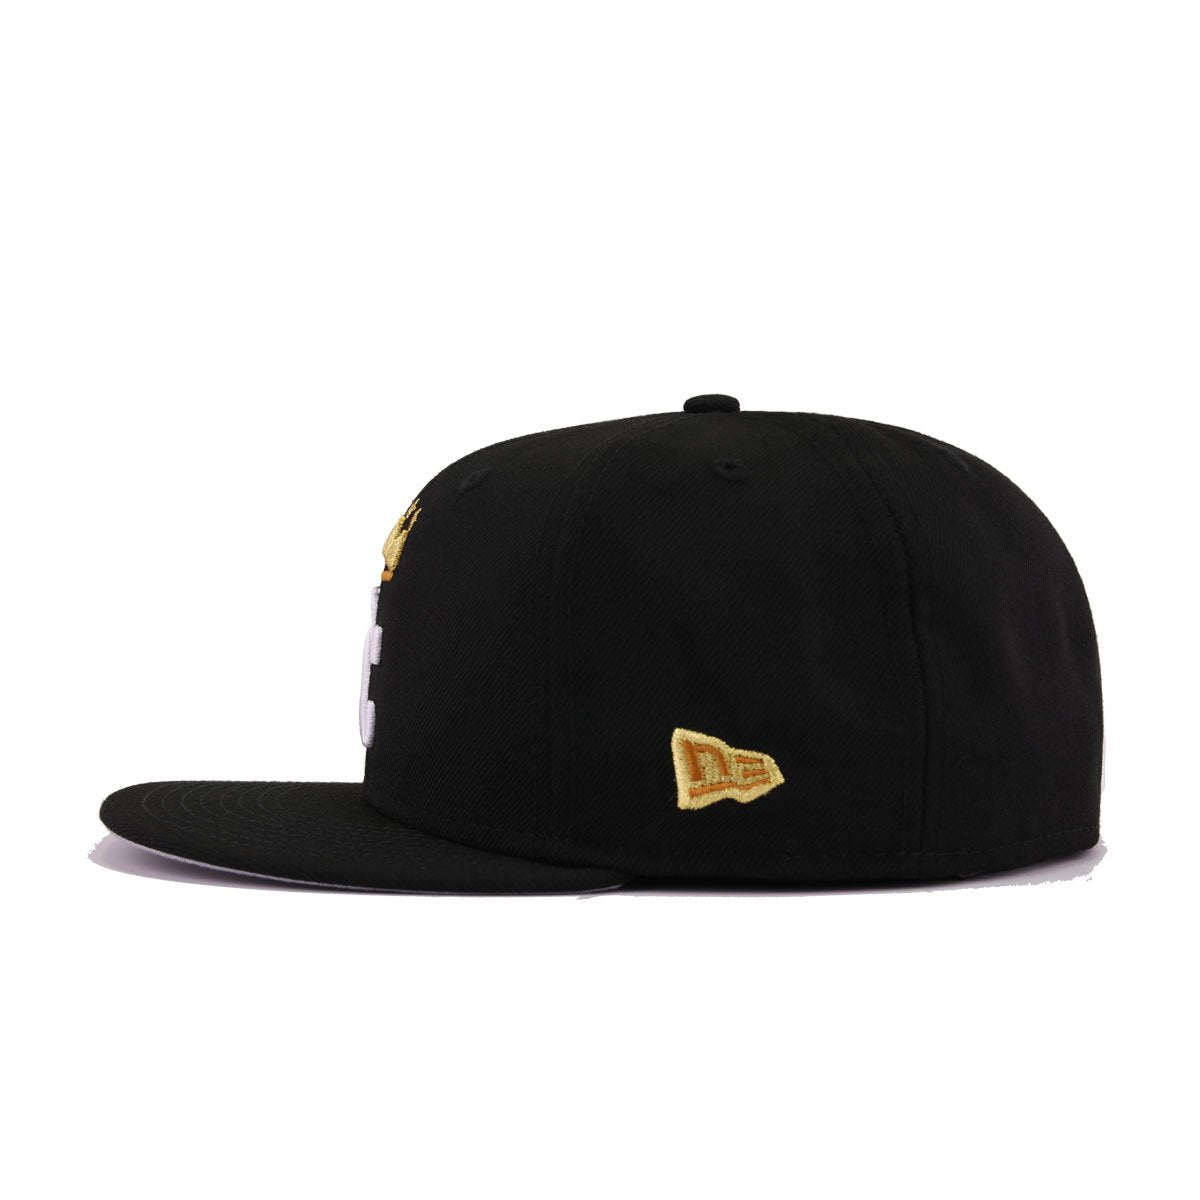 Kansas City Royals Black Metallic Gold Batting Practice New Era 59Fifty Fitted